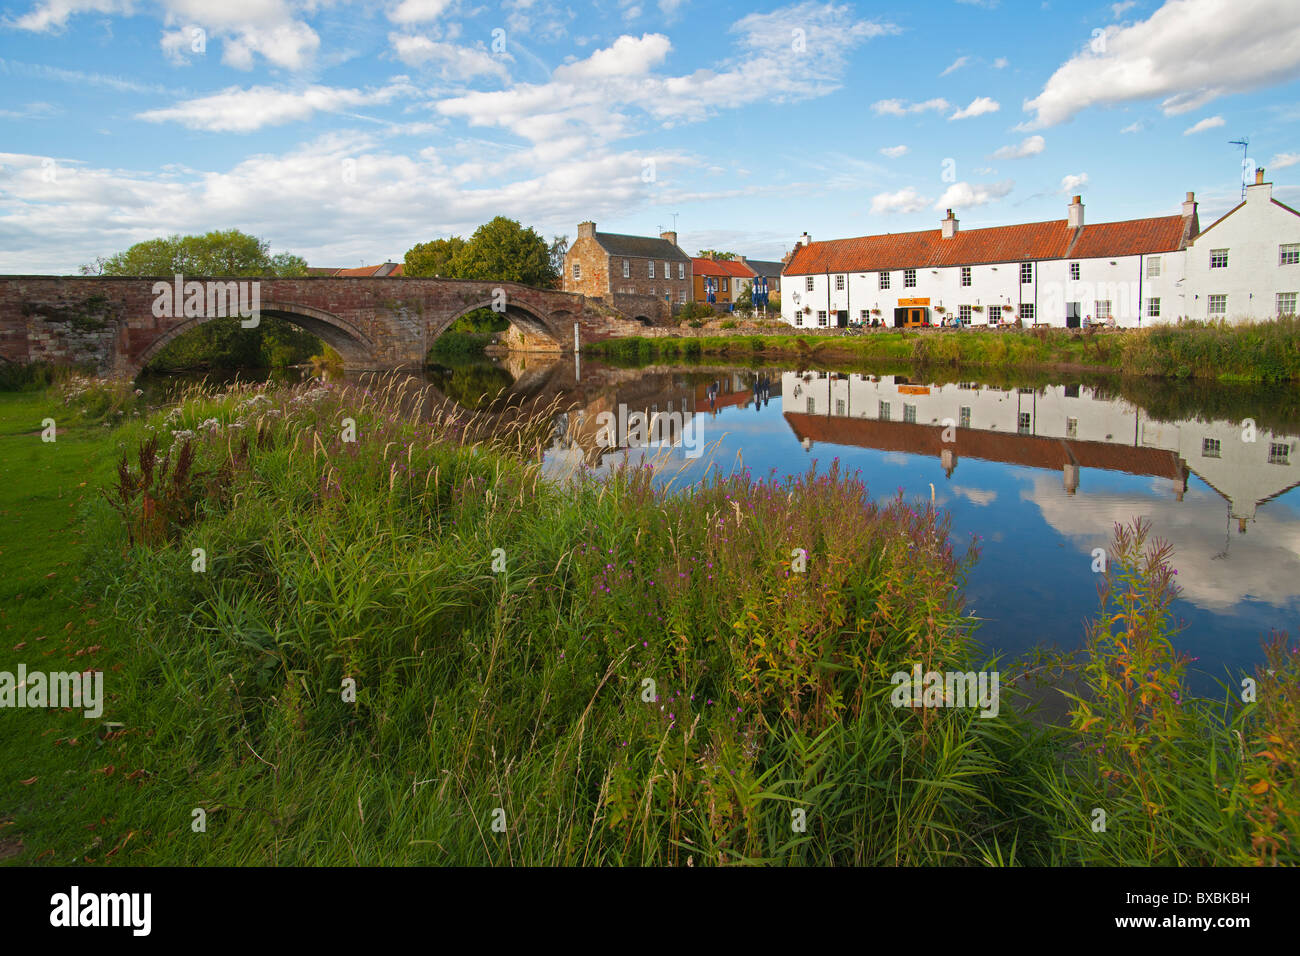 River Tyne, Waterside, Haddington, east Lothian, Scotland, August 2010 - Stock Image